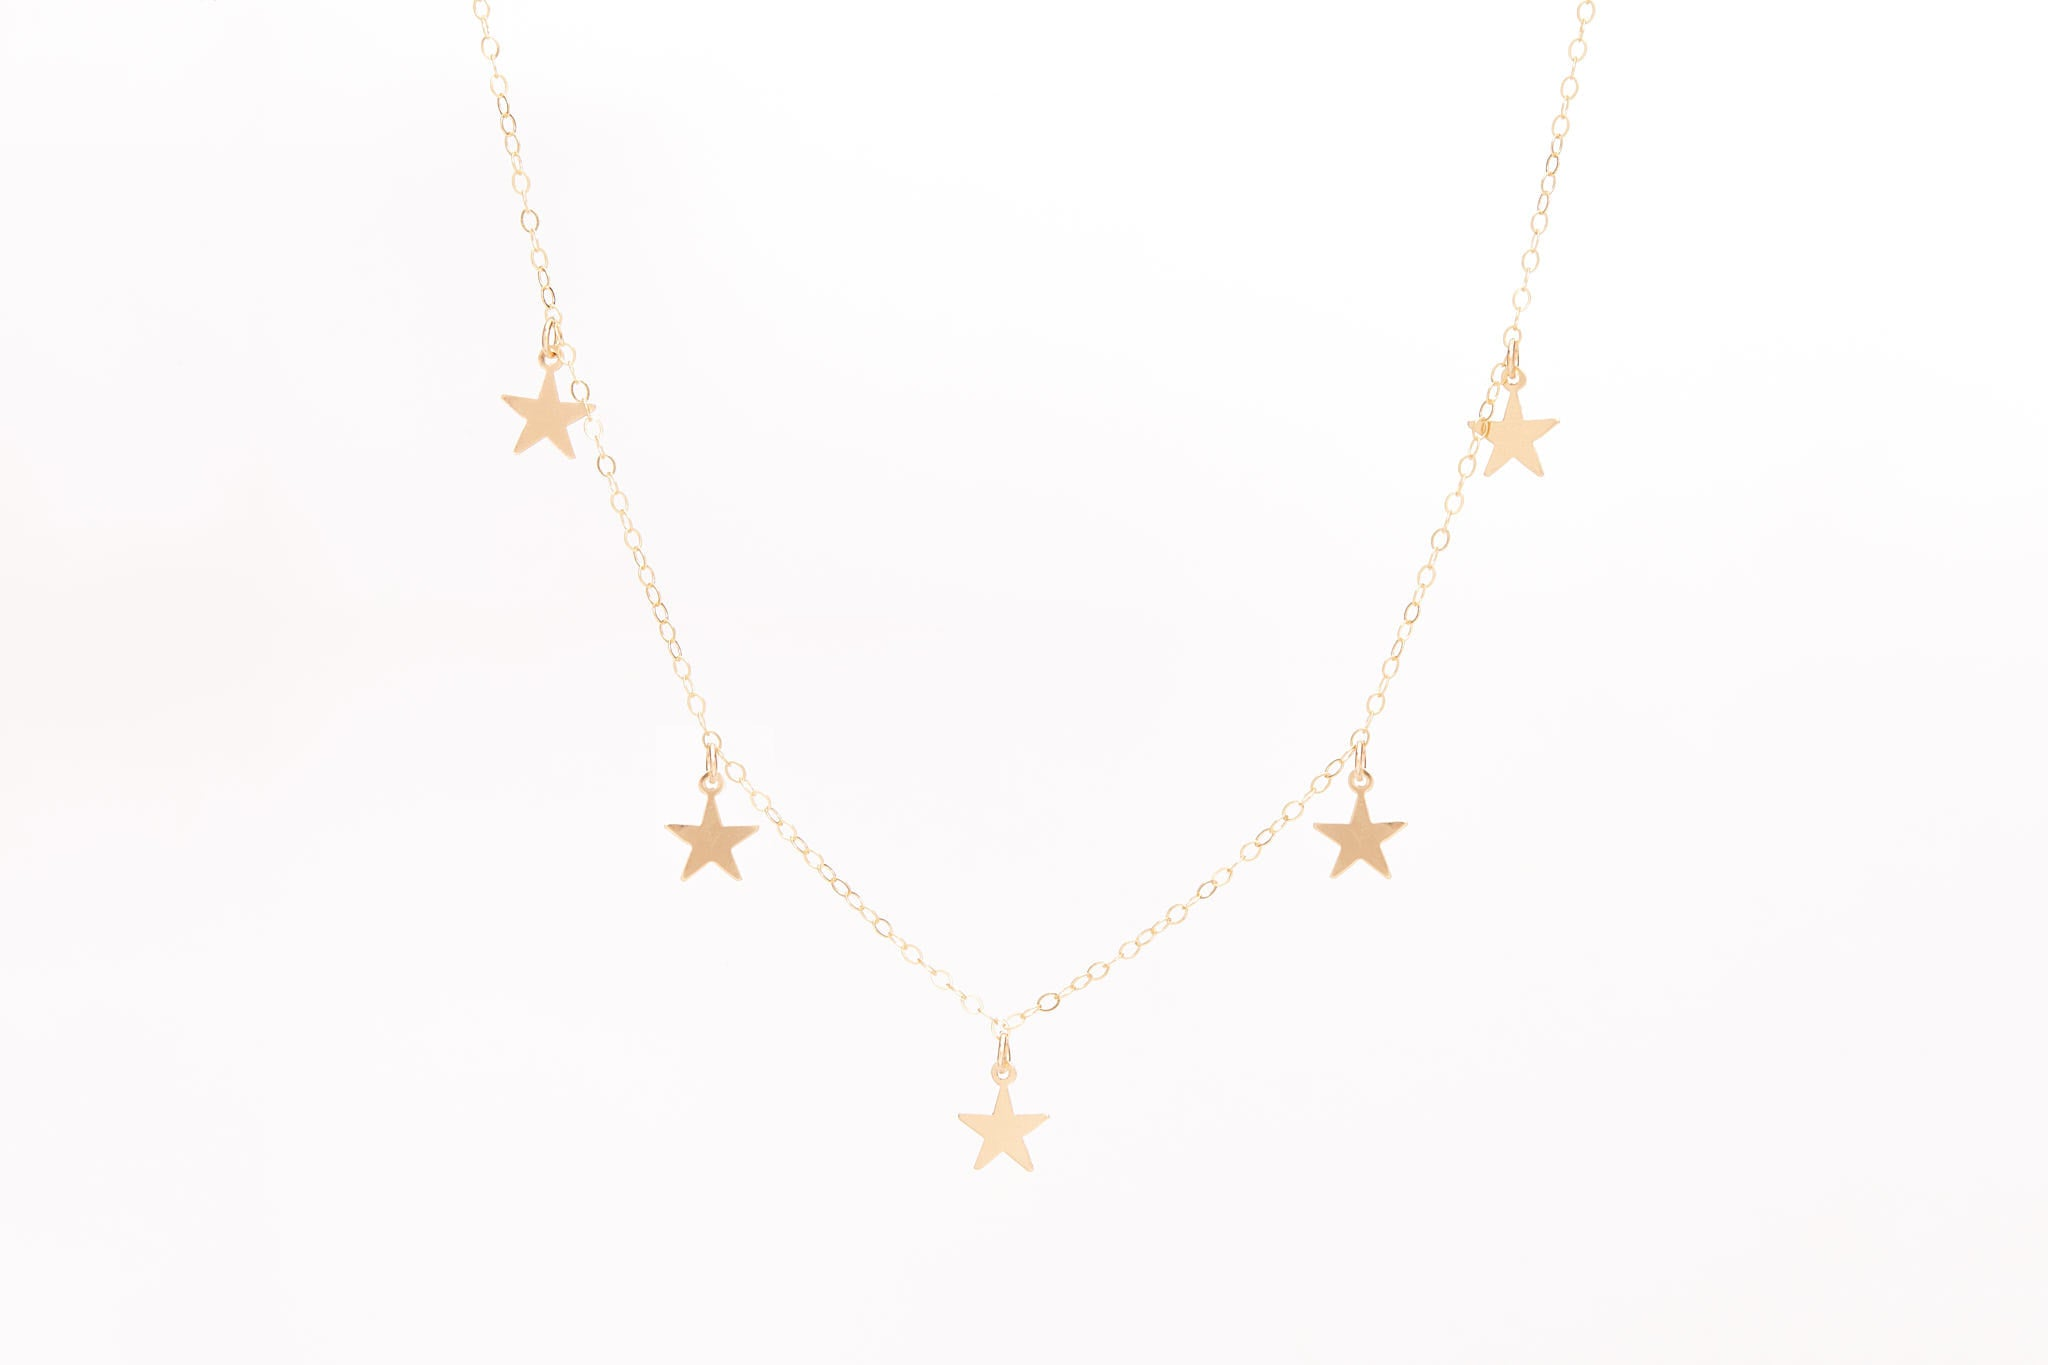 Gold or Silver Stars Necklace